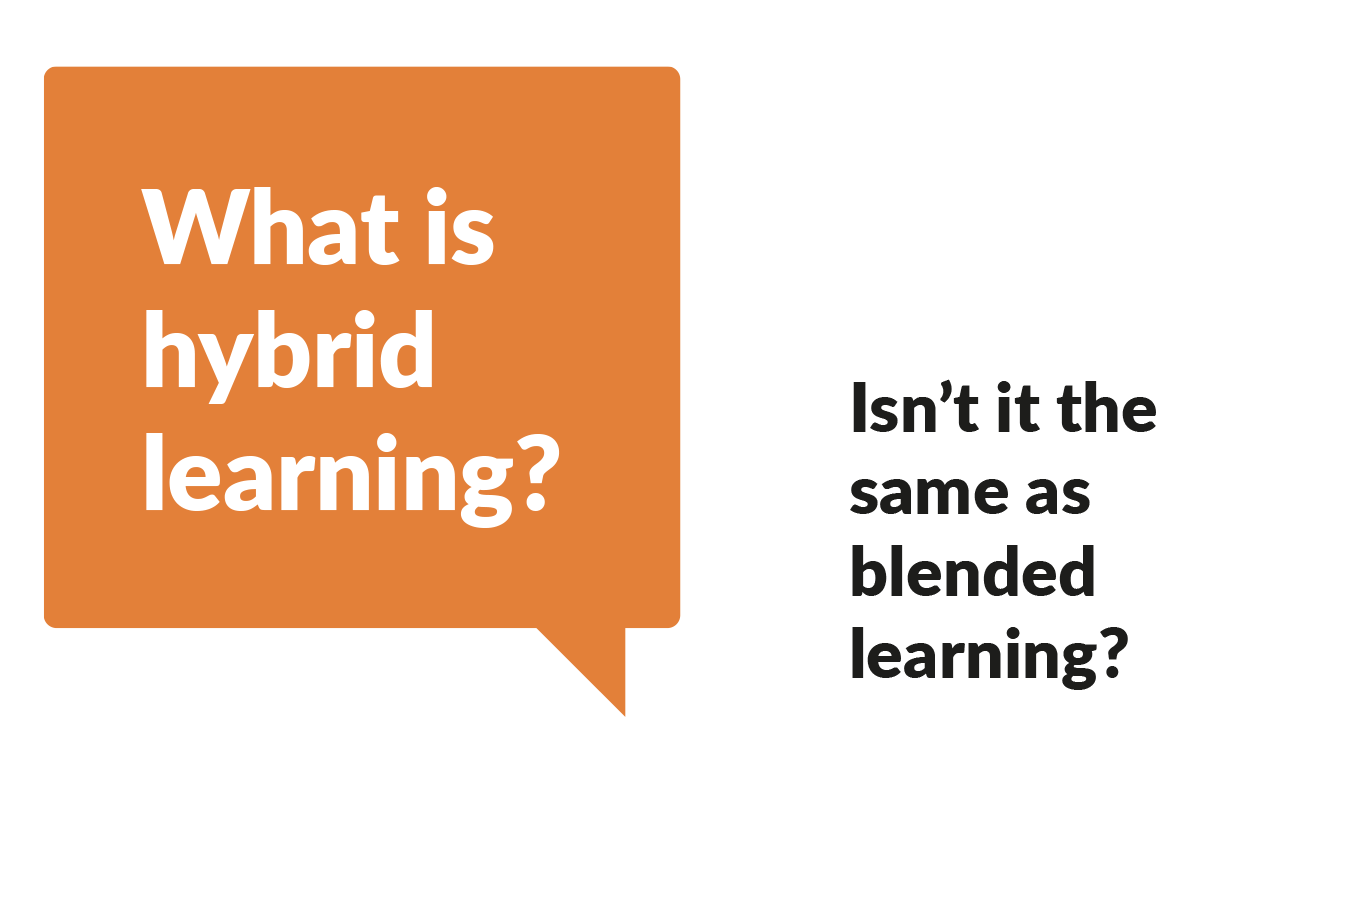 What is hybrid learning? Isn't it the same as blended learning?